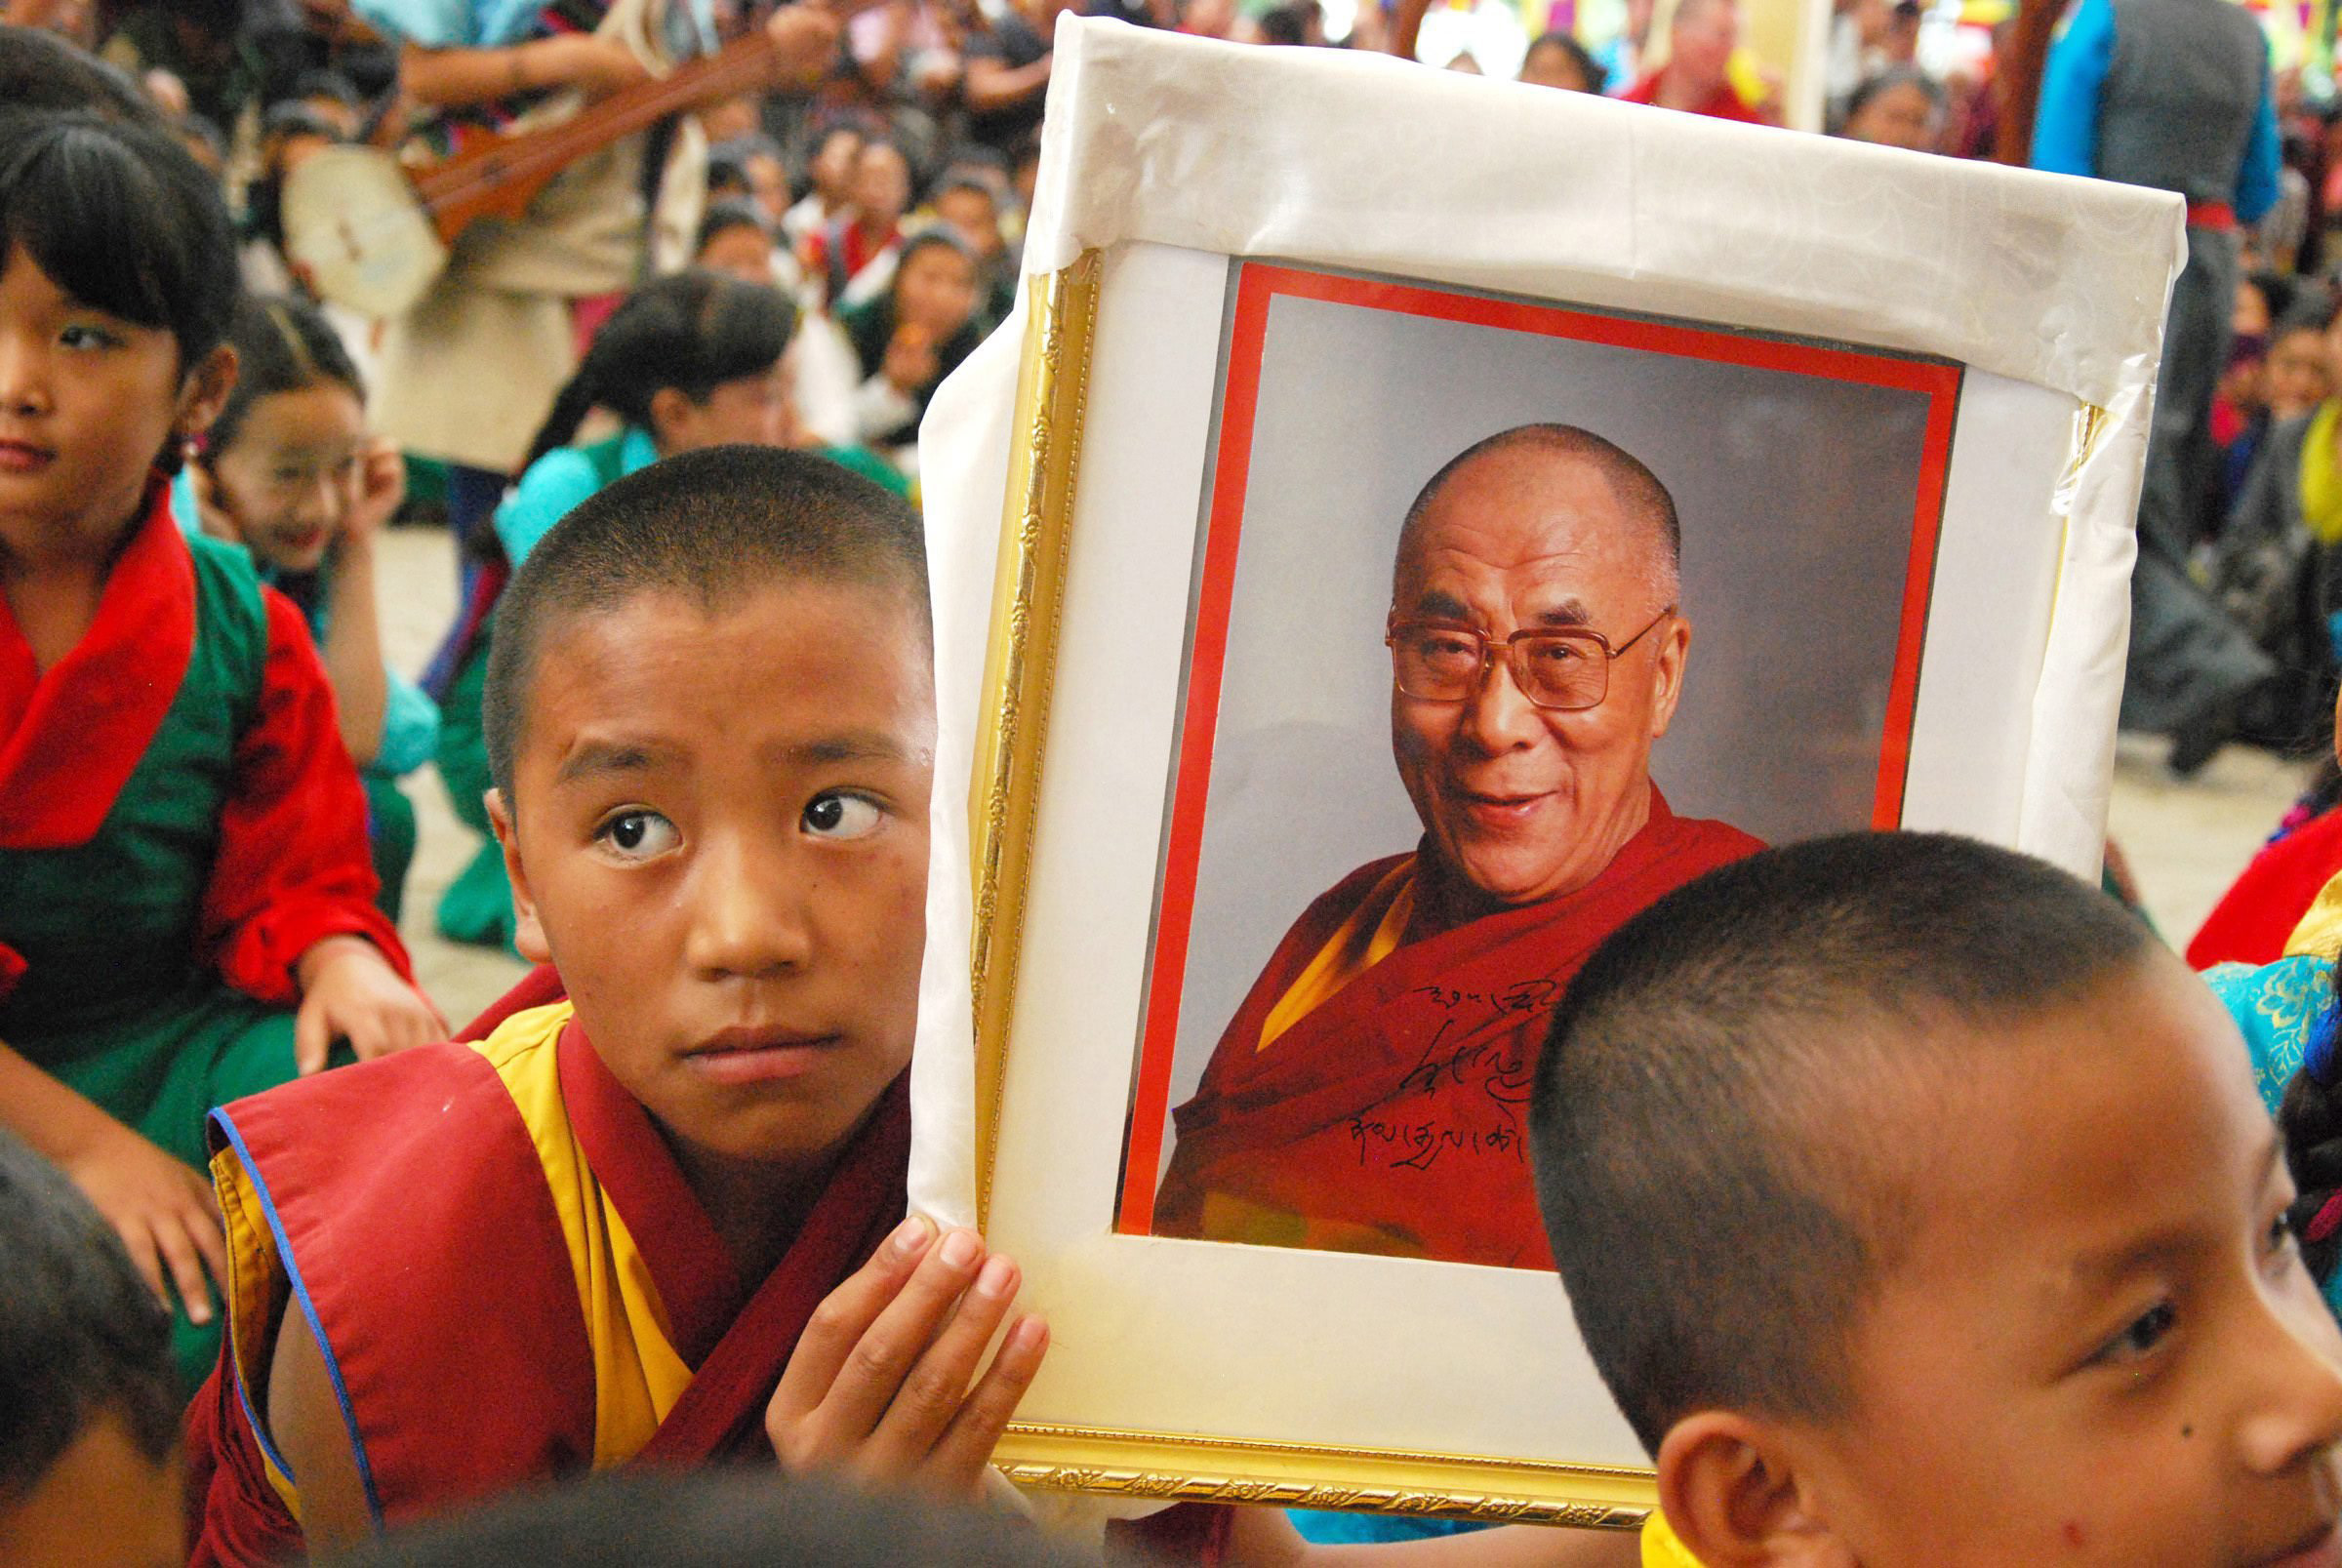 A Tibetan Monk holds a picture of the Dalai Lama, as they celebrate his 80th birthday in Dharmsala, India on July 6, 2015.